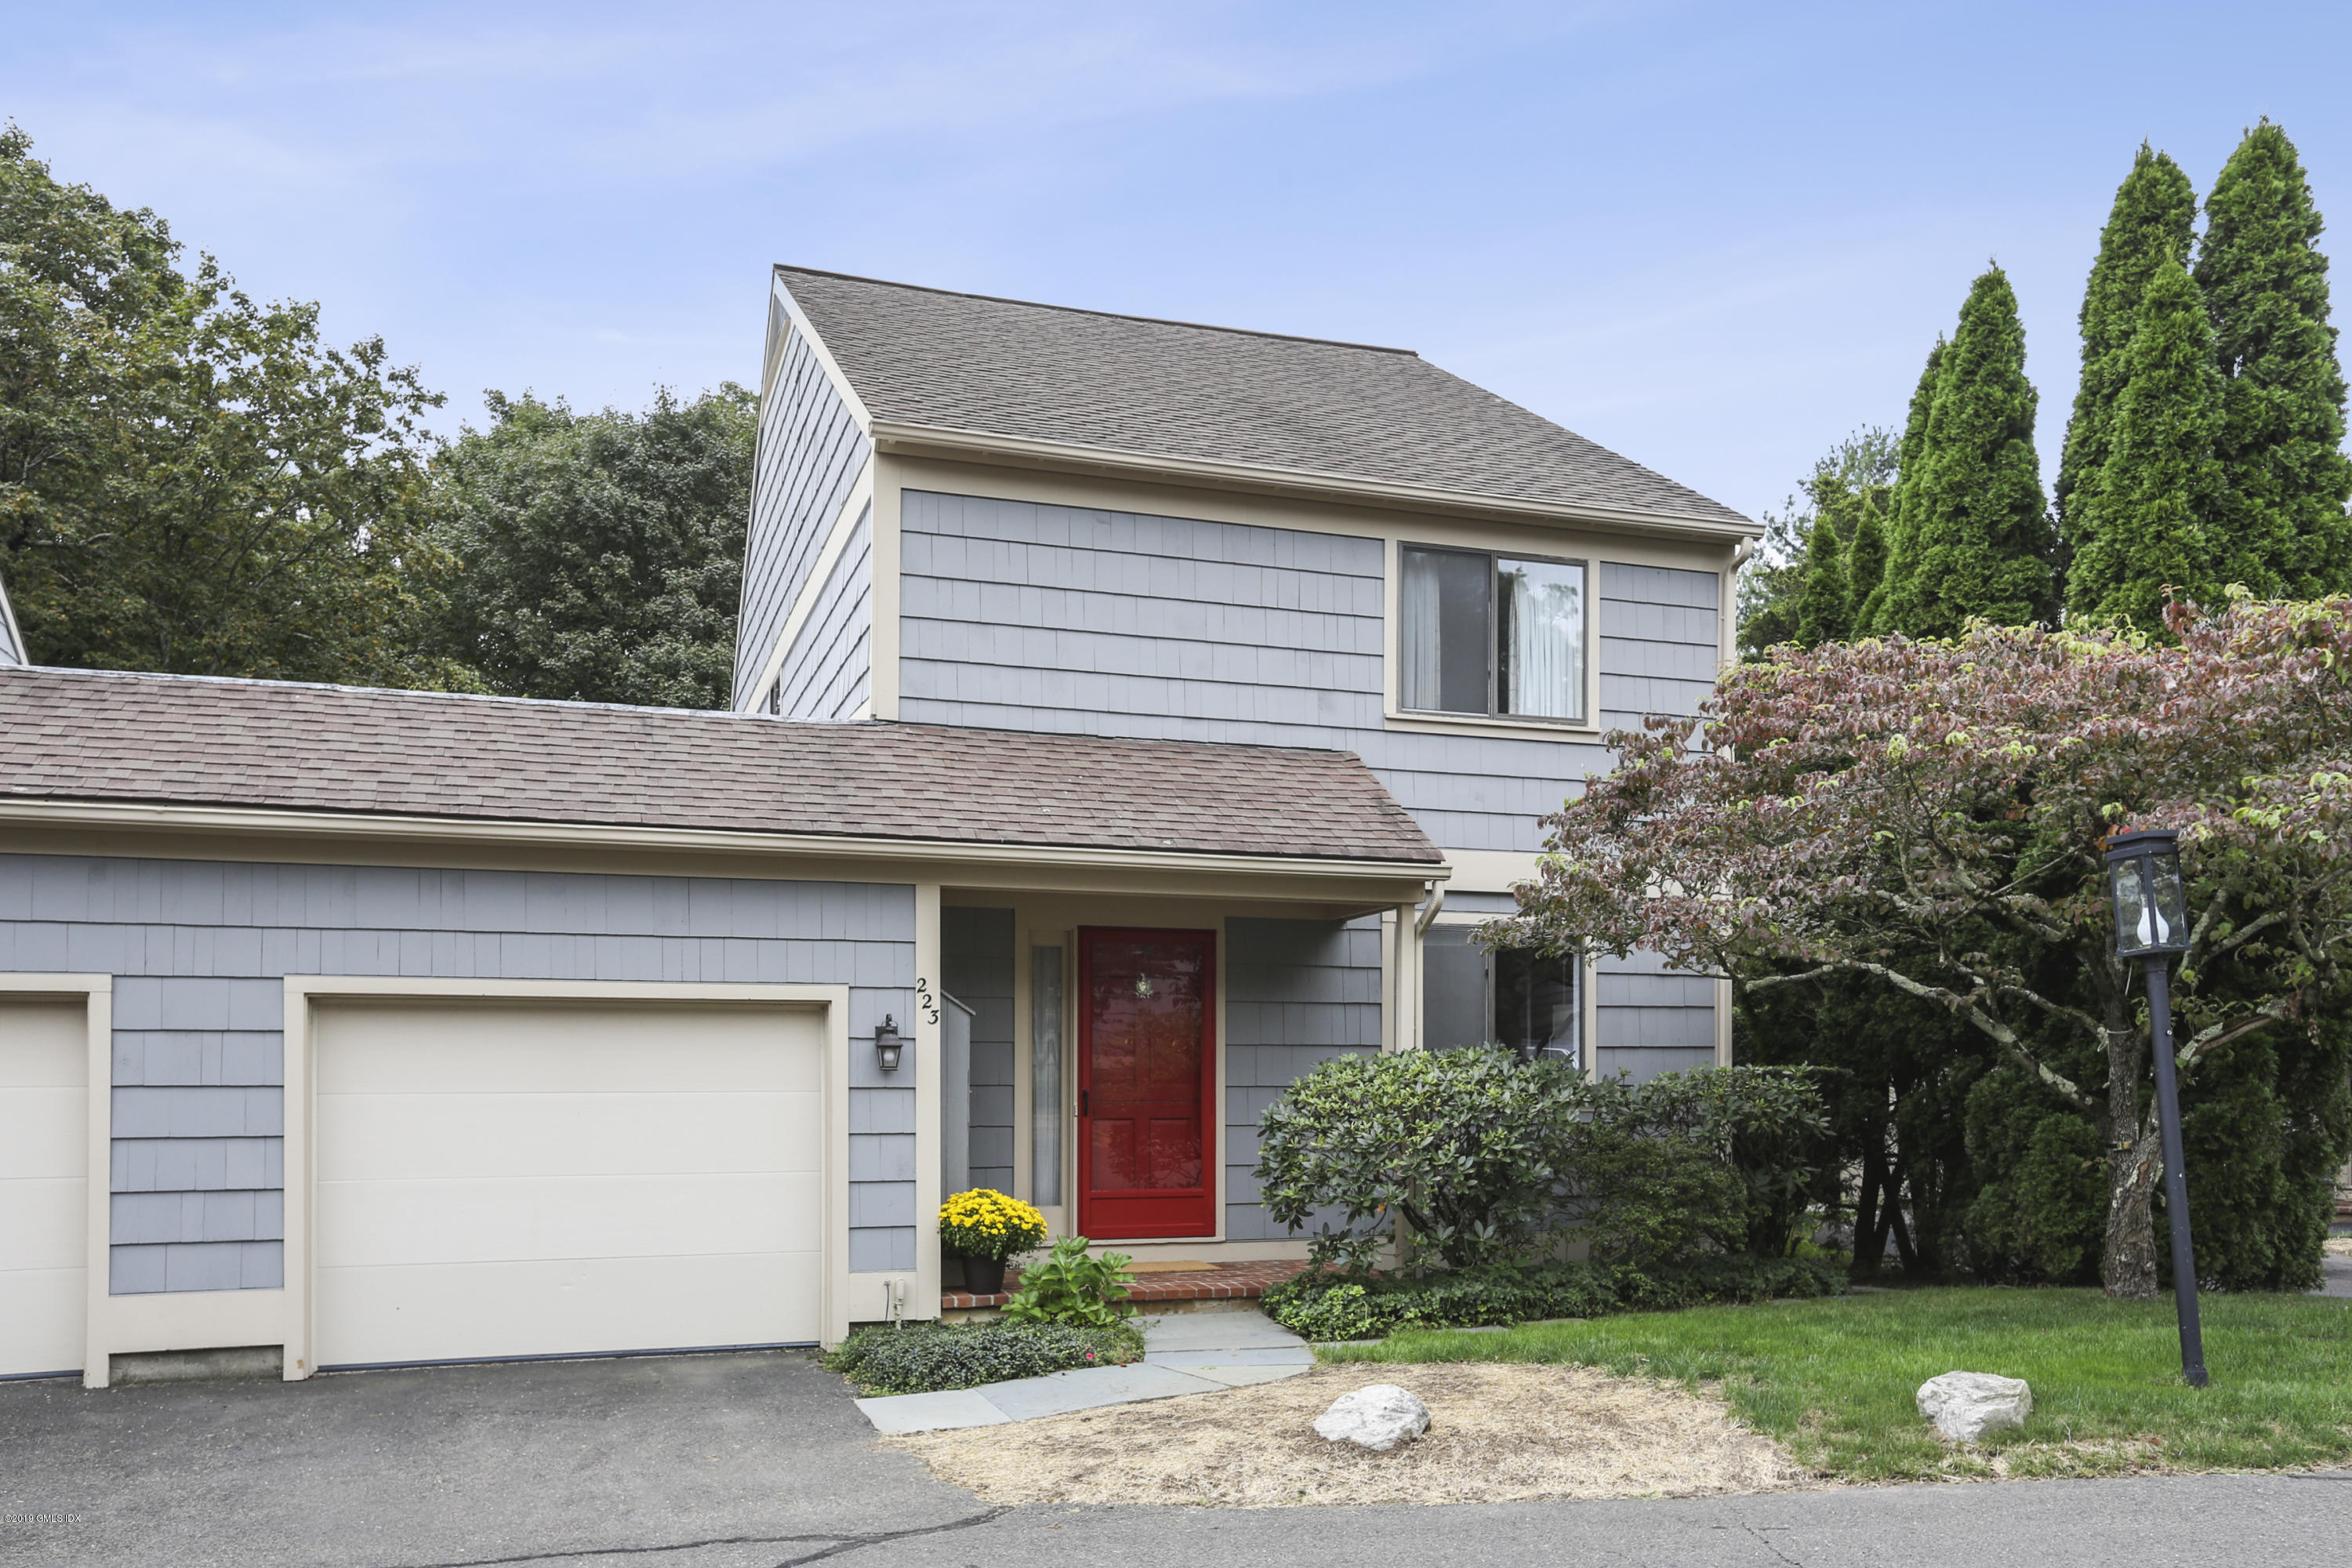 223 Lyon Farm Drive,Greenwich,Connecticut 06831,2 Bedrooms Bedrooms,2 BathroomsBathrooms,Condominium,Lyon Farm,107844